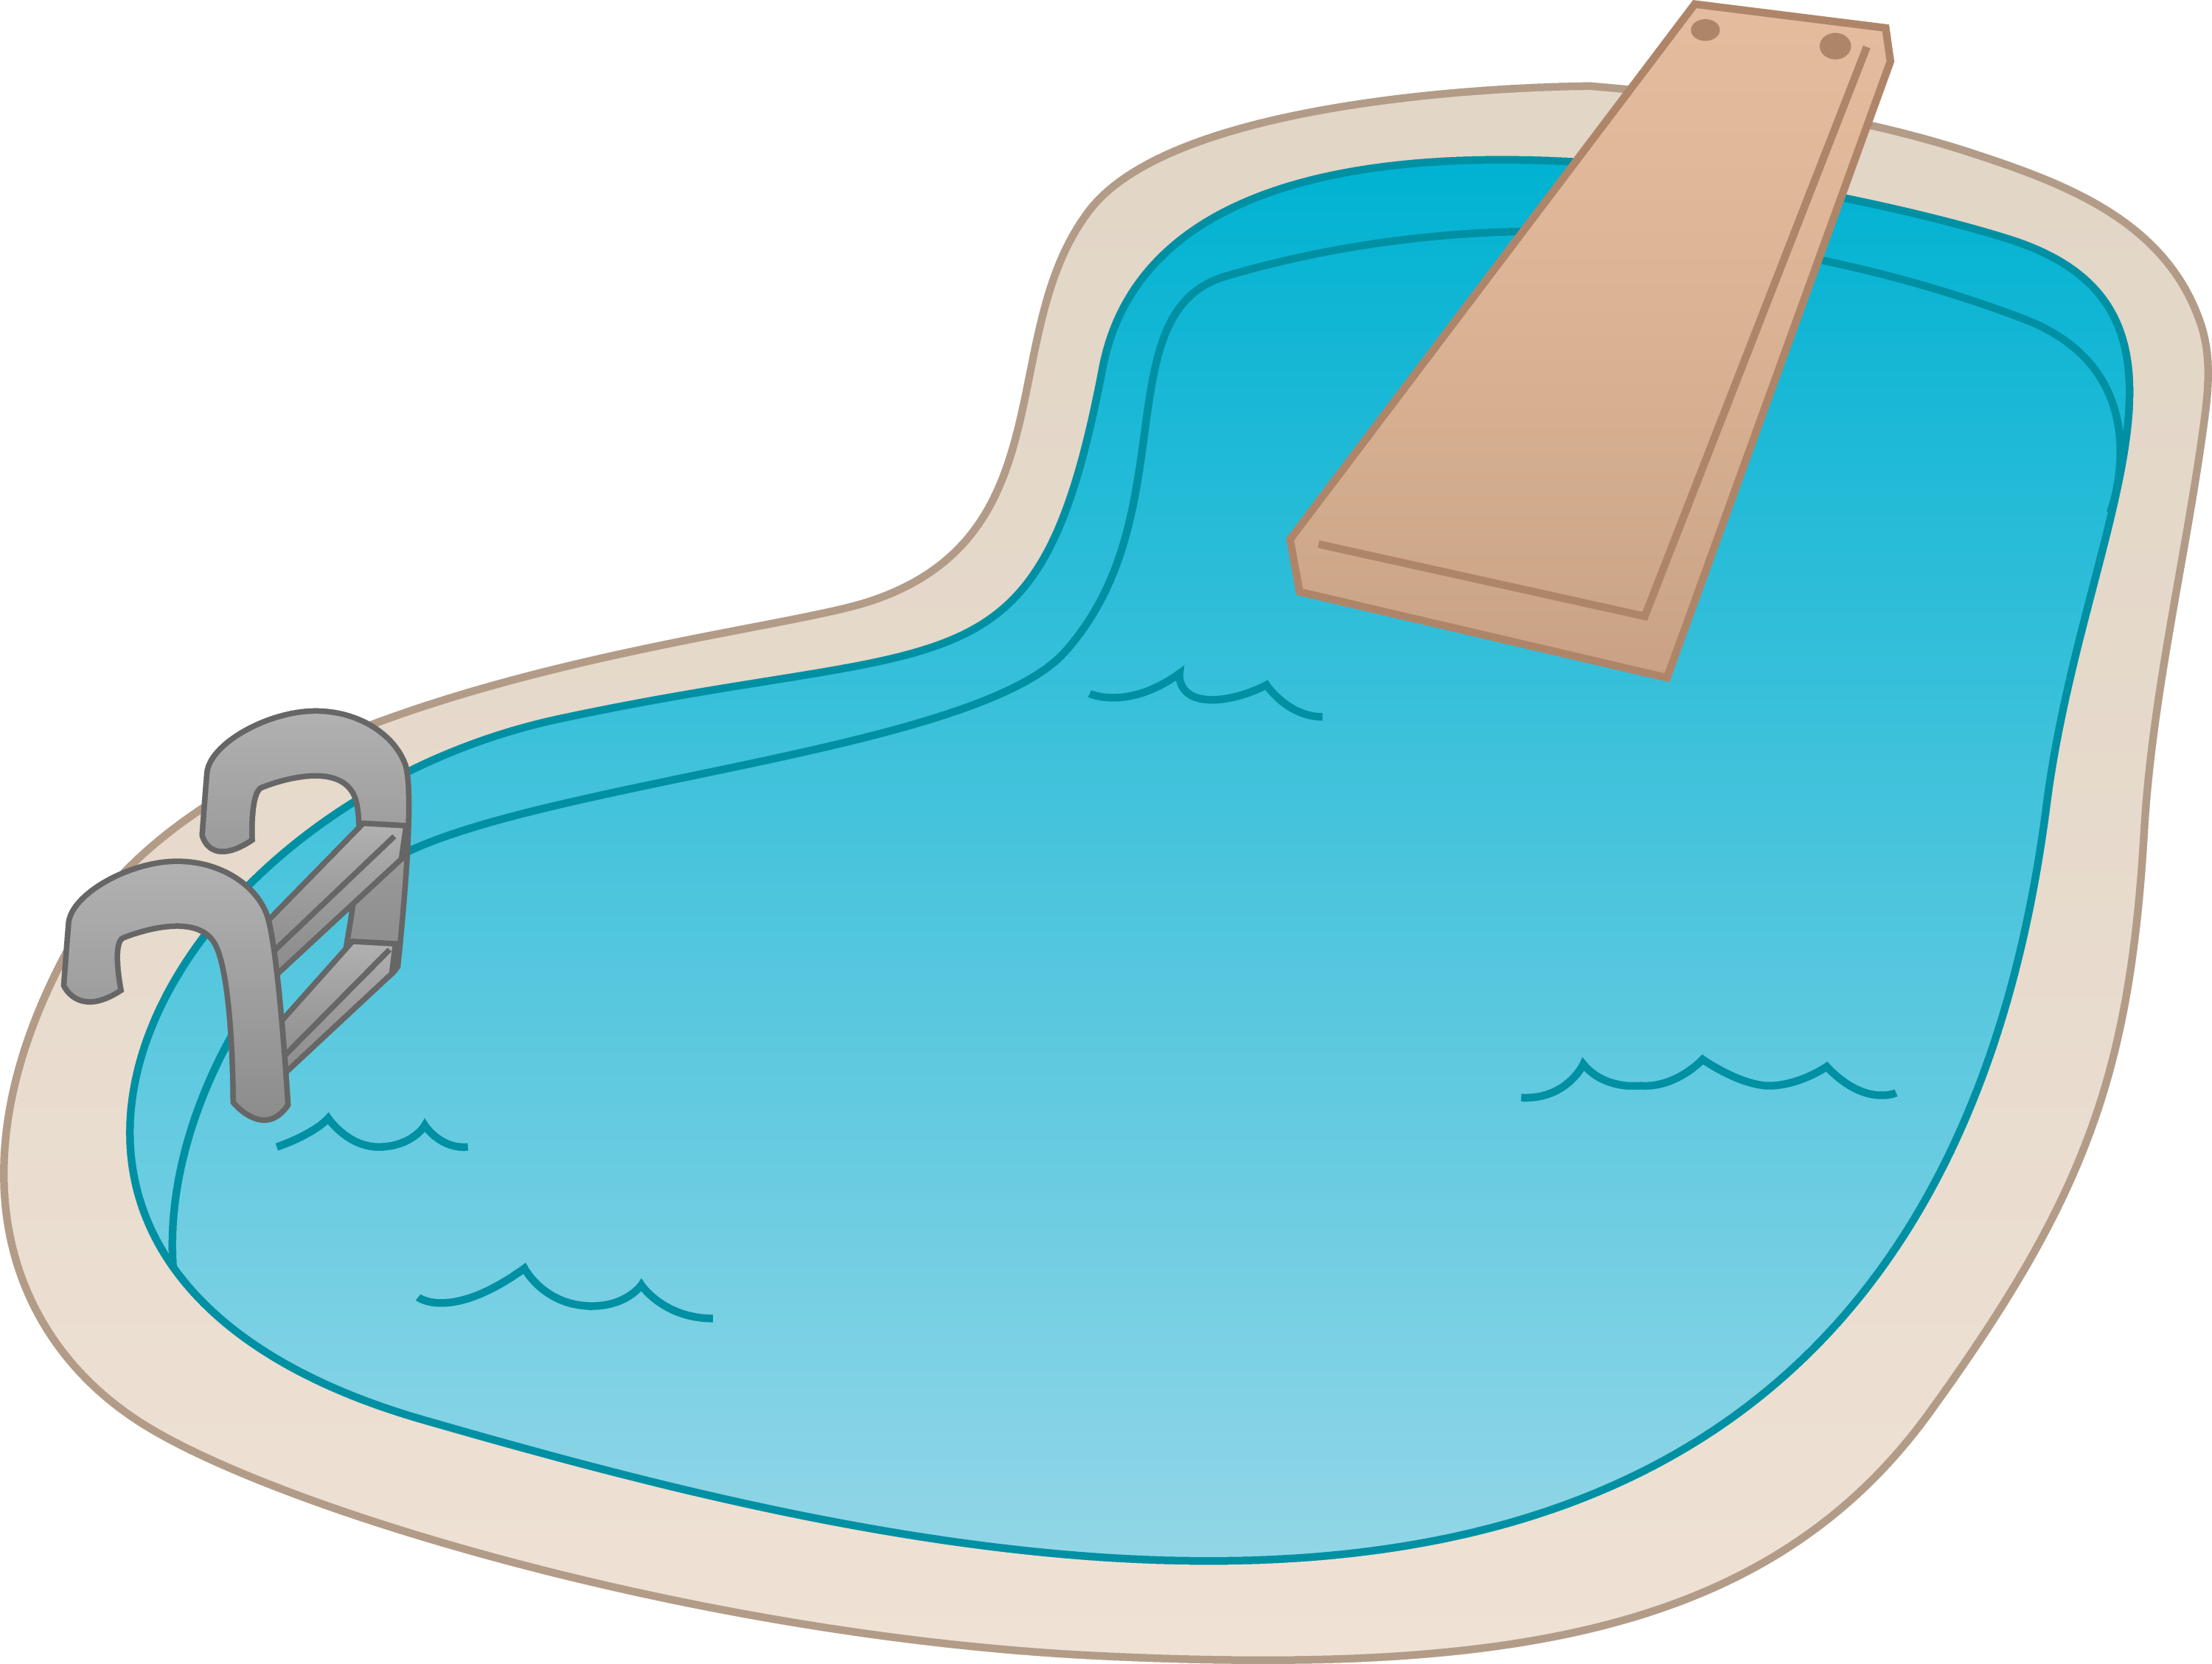 Swimming Pool With Diving Board Free Clip Art